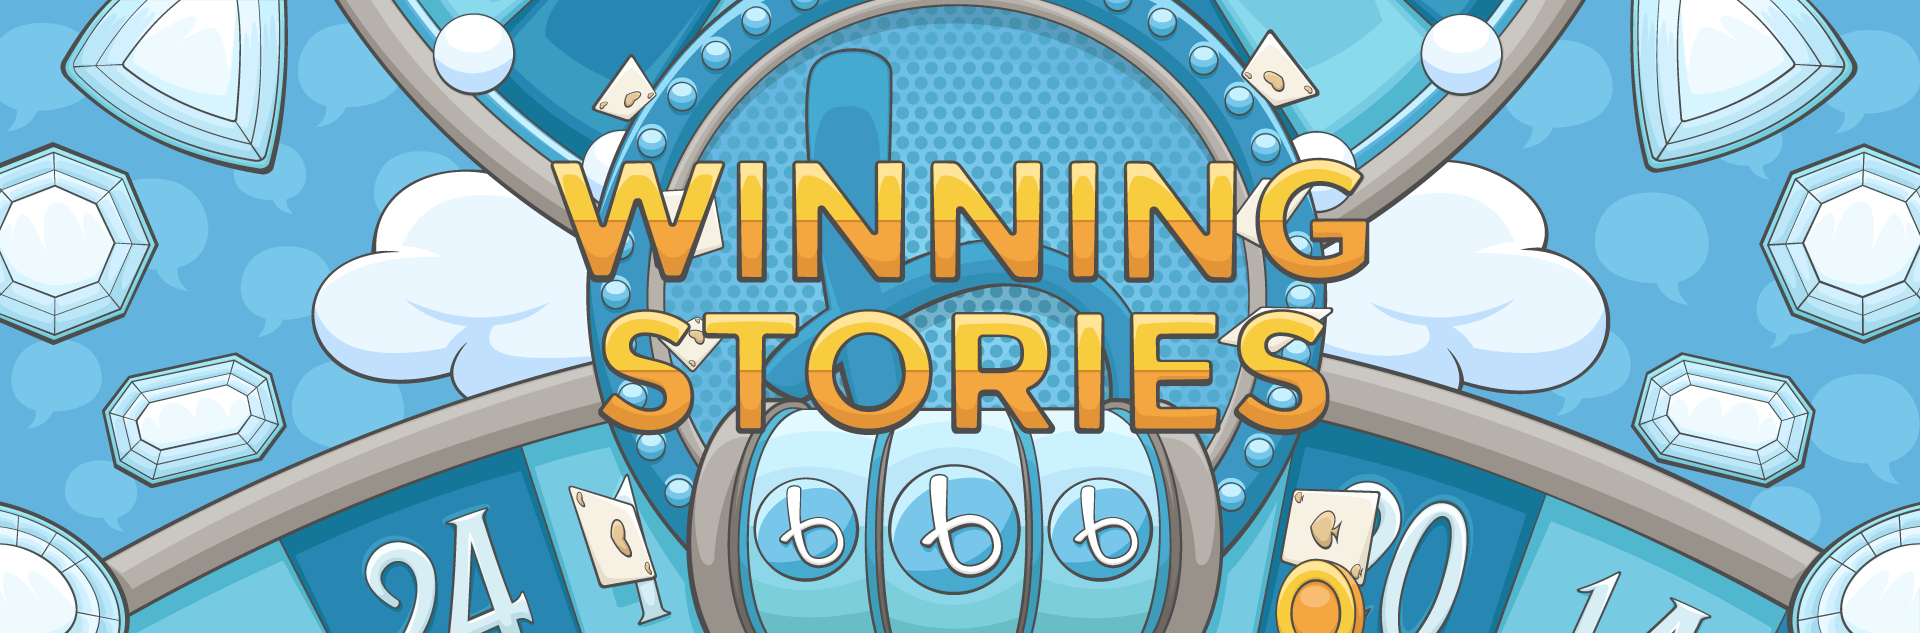 Winning Biggest Online Slot Wins with Pictures & Stories [UK] cover